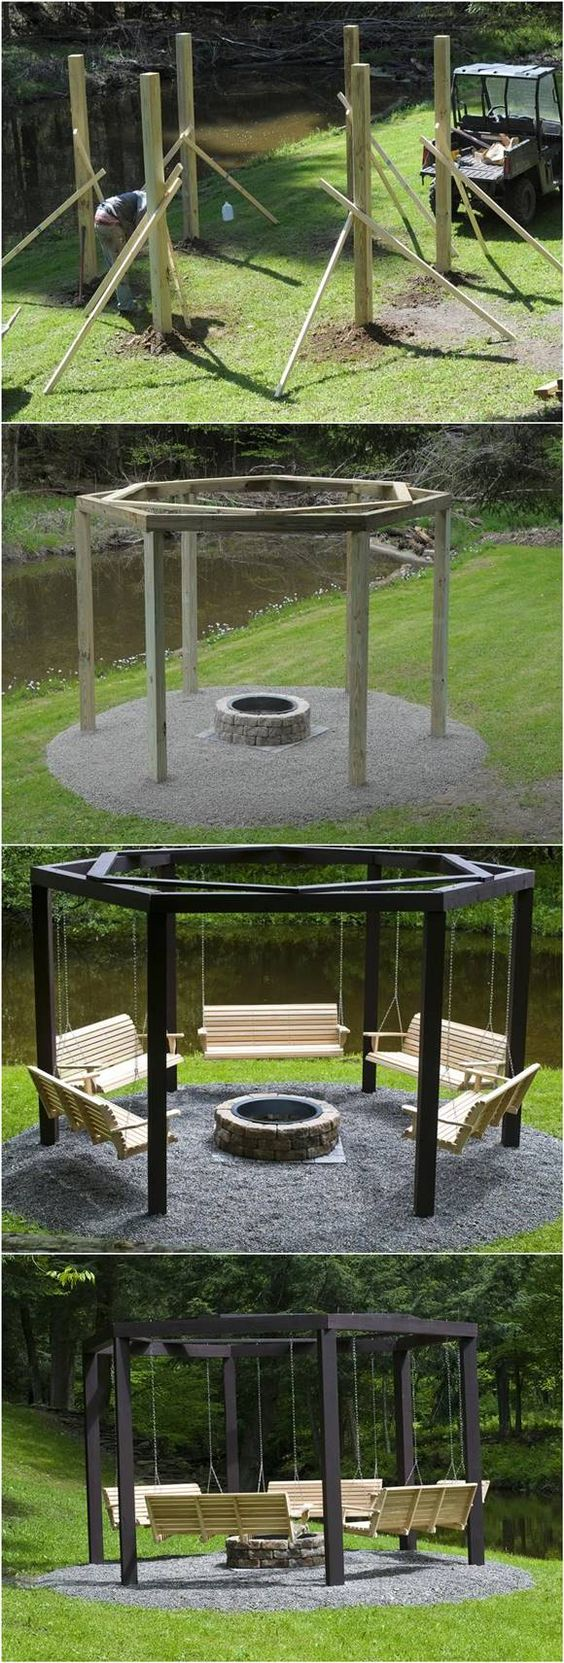 DIY Backyard Fire Pit with Swing Seats #backyard #home_improvement #bunkerplans: